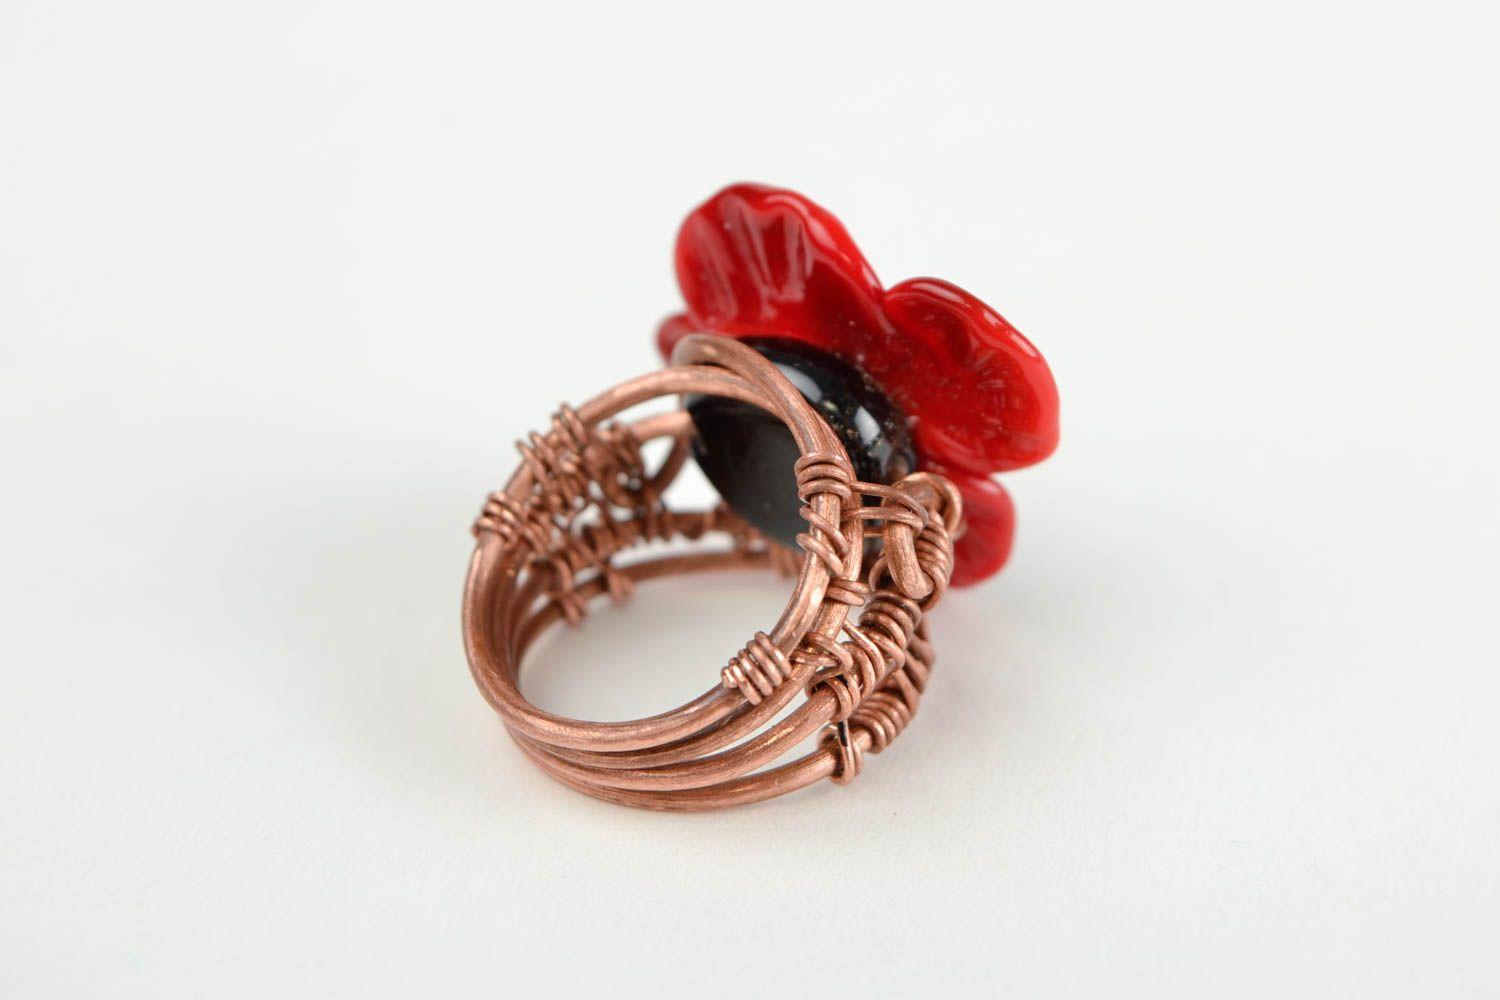 Handmade ring designer accessory gift for her unusual ring with flowers photo 5